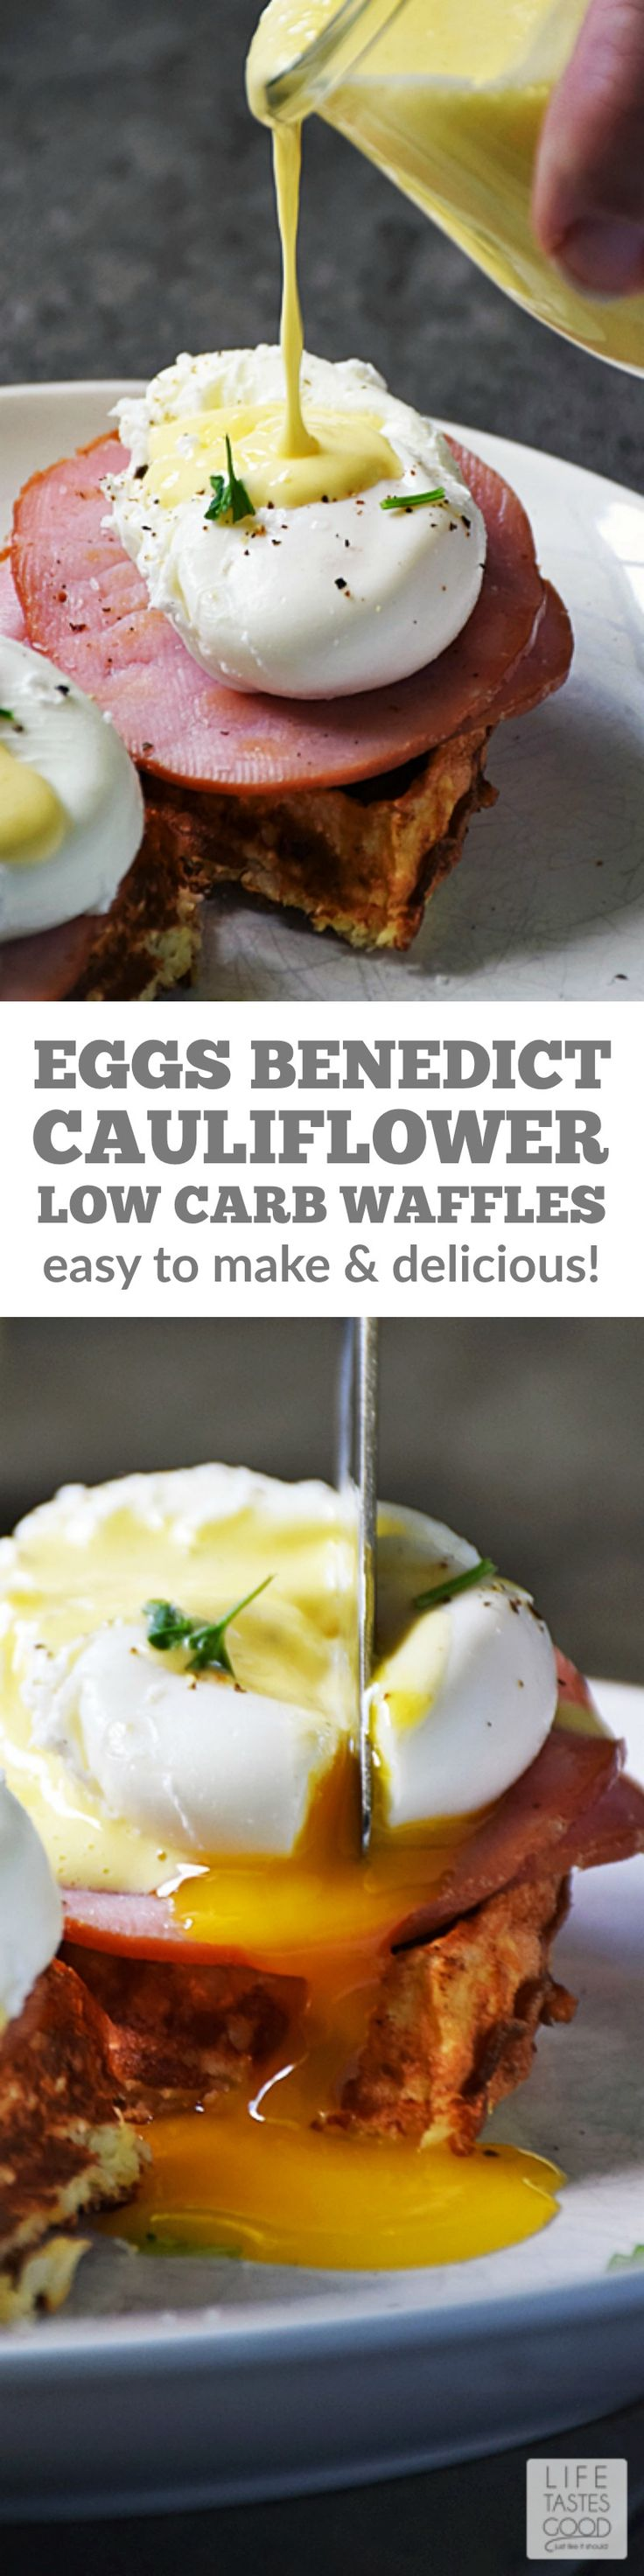 Eggs Benedict Cauliflower Waffles | by Life Tastes Good is much like the traditional Eggs Benedict found on brunch menus everywhere, but it is a lower carb version incorporating cauliflower for a healthier option loaded with delicious flavor. Easy recipe perfect for breakfast or anytime! #LTGrecipes